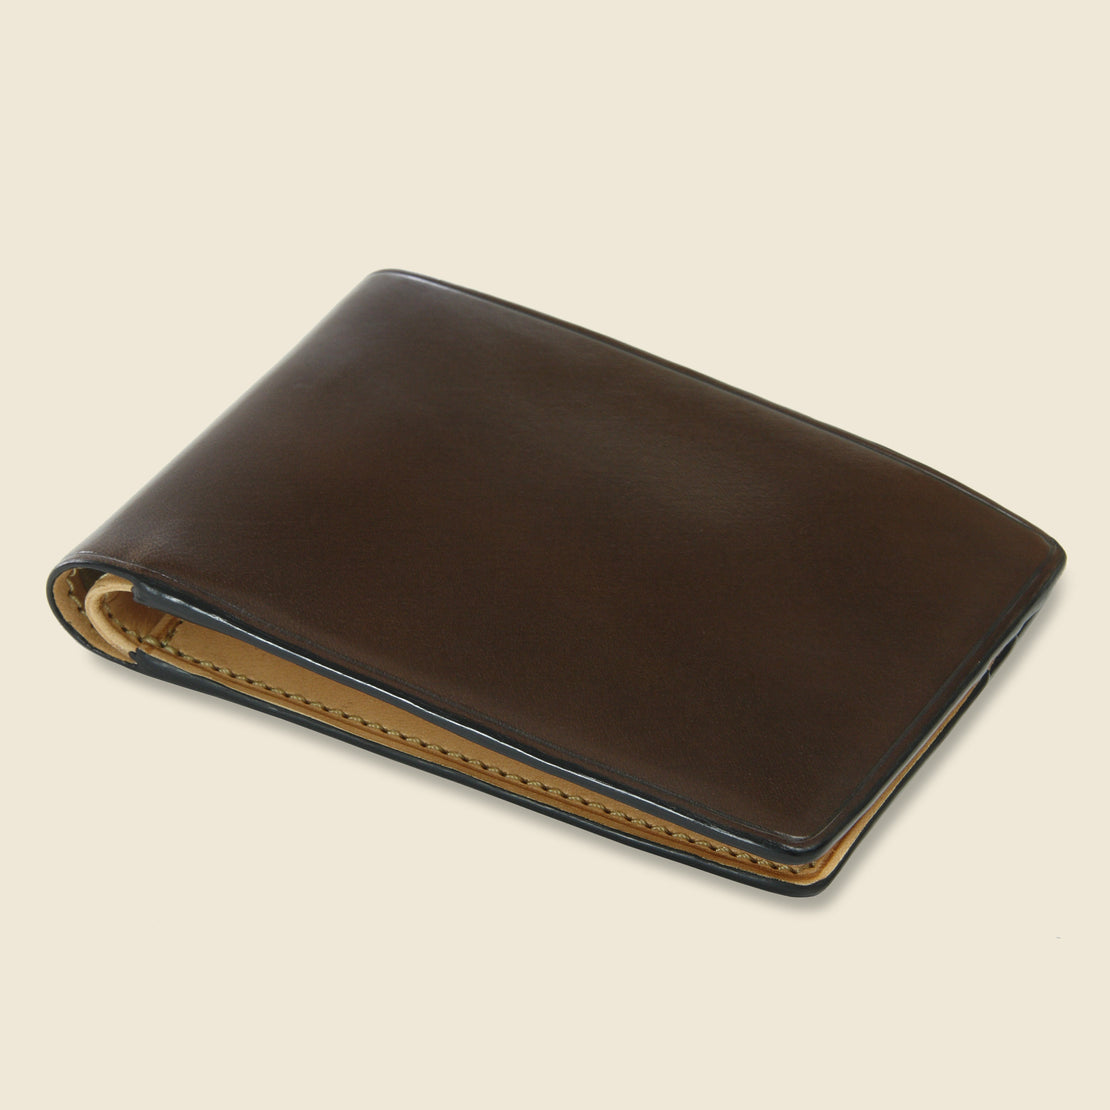 Small Bi-Fold Wallet - Dark Brown - Il Bussetto - STAG Provisions - Accessories - Wallets